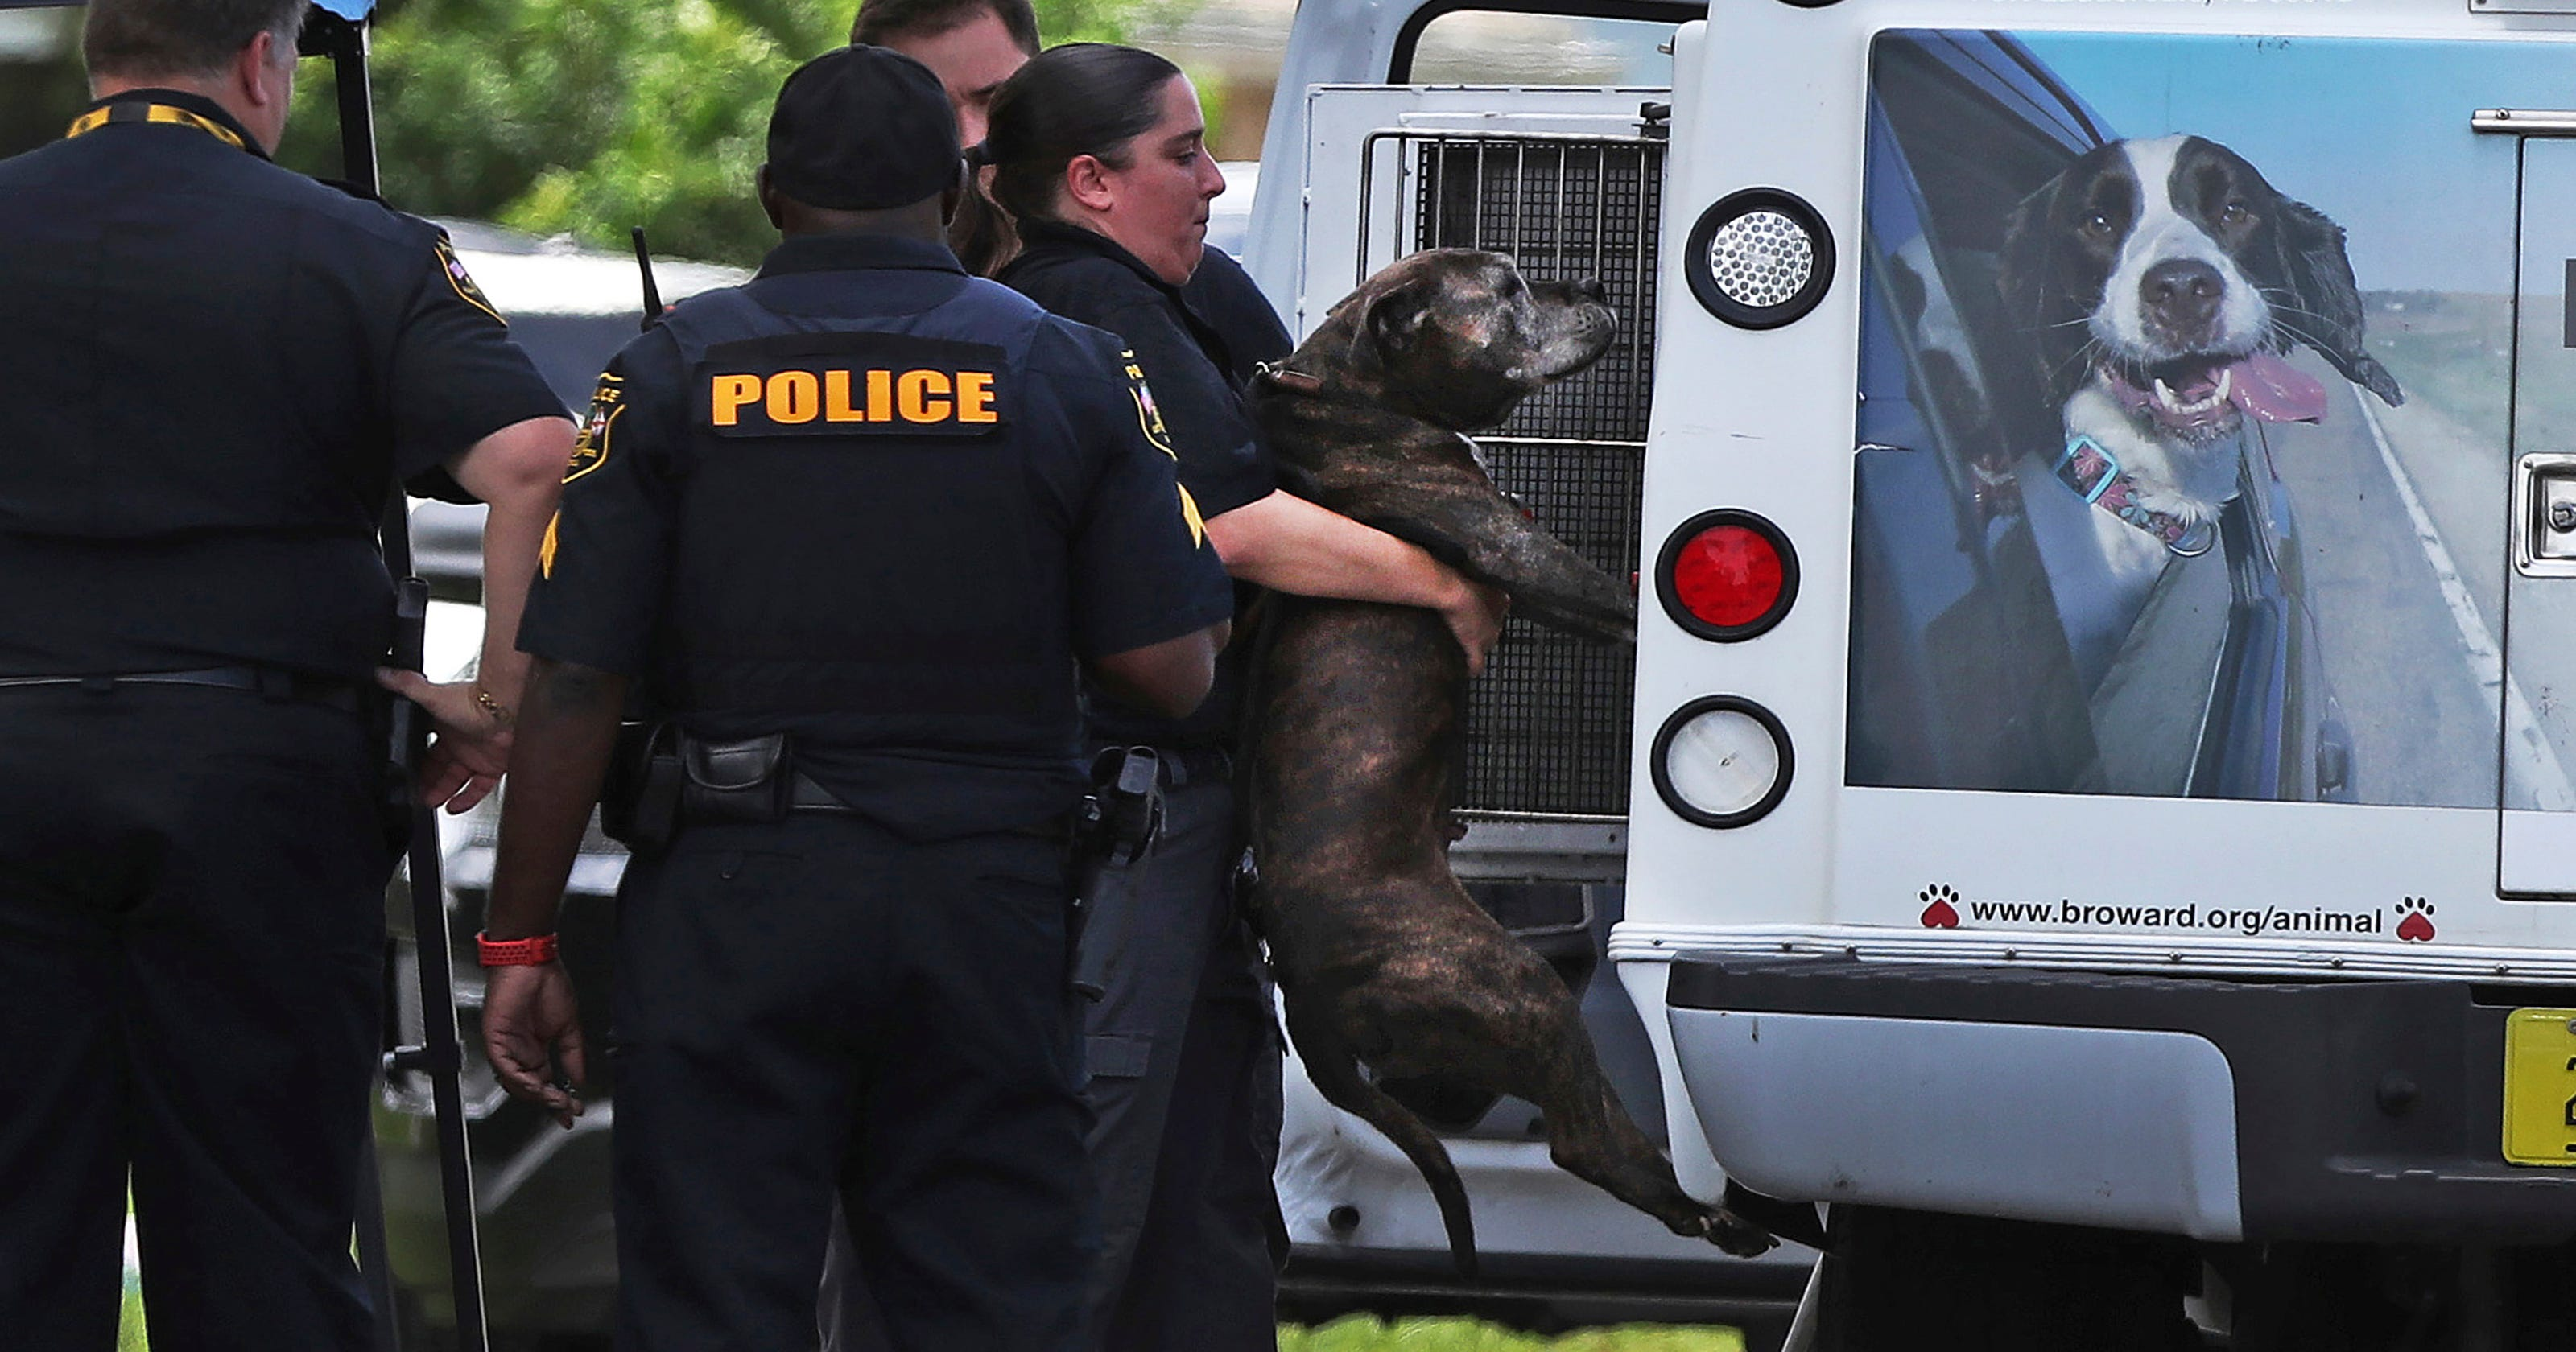 Pet pit bull attacks and kills 8-month-old baby girl in Miramar, Fla